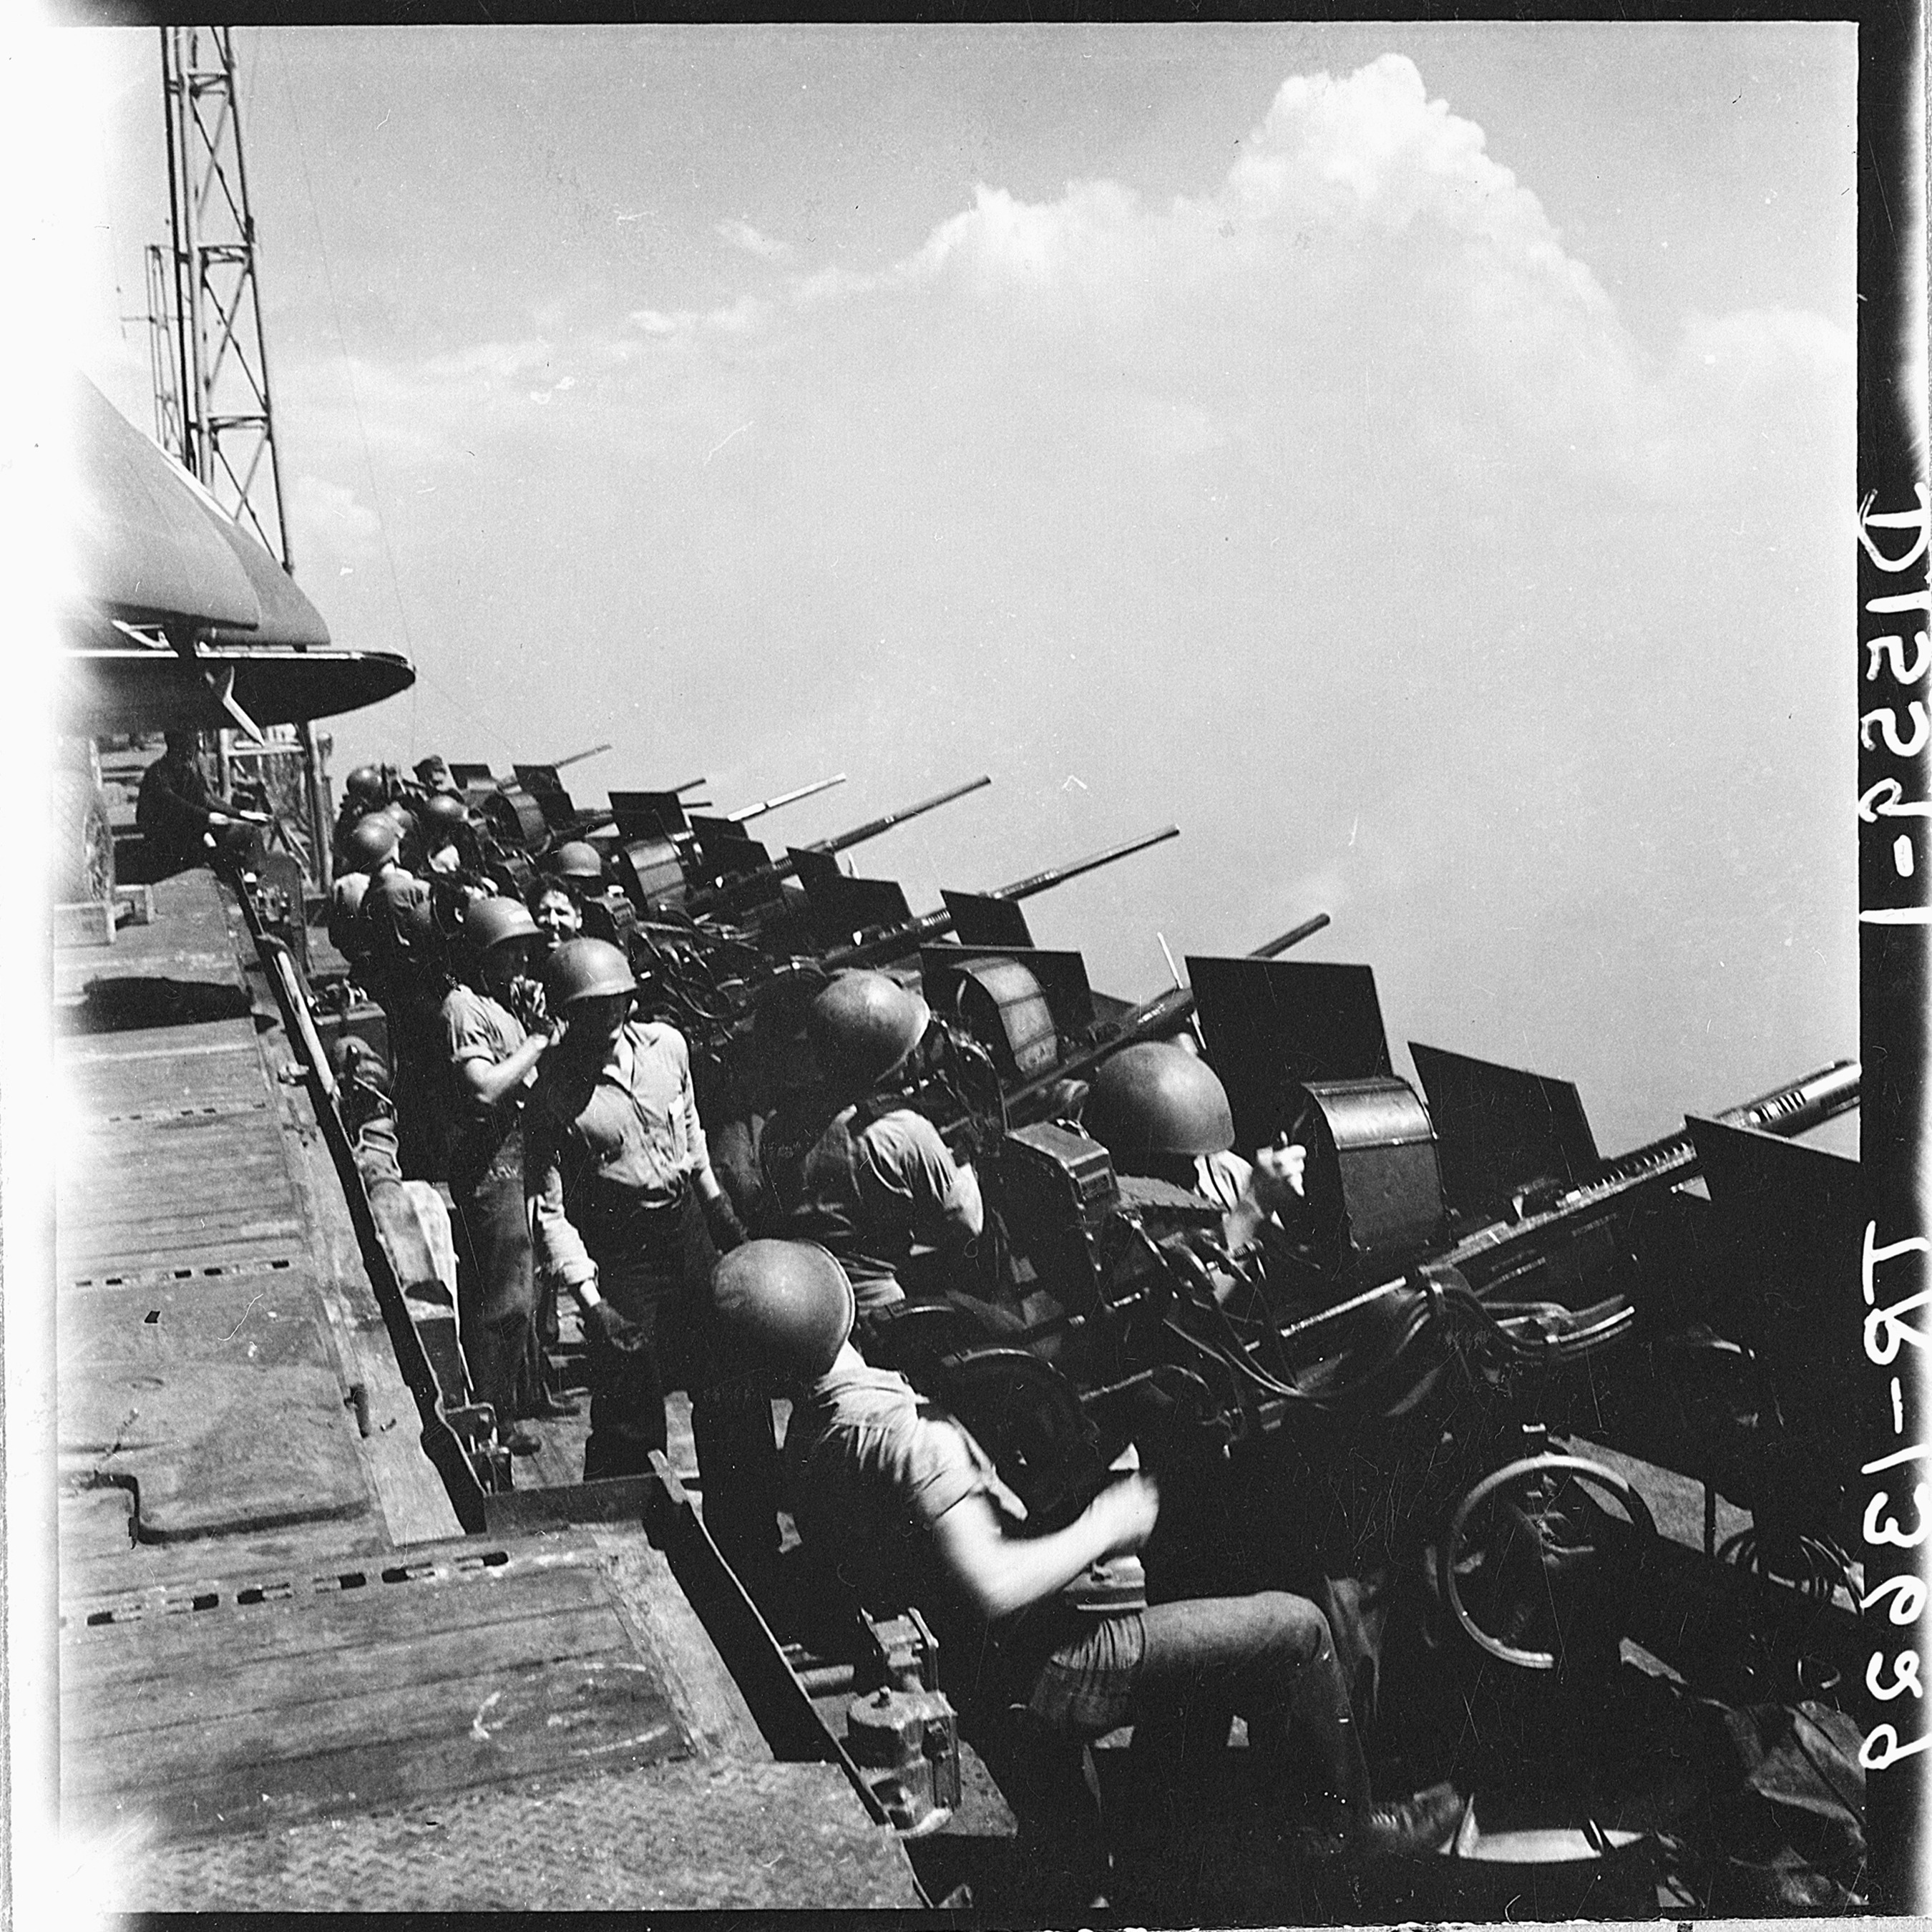 file 20mm gun crews standing by aboard the uss hornet  cv